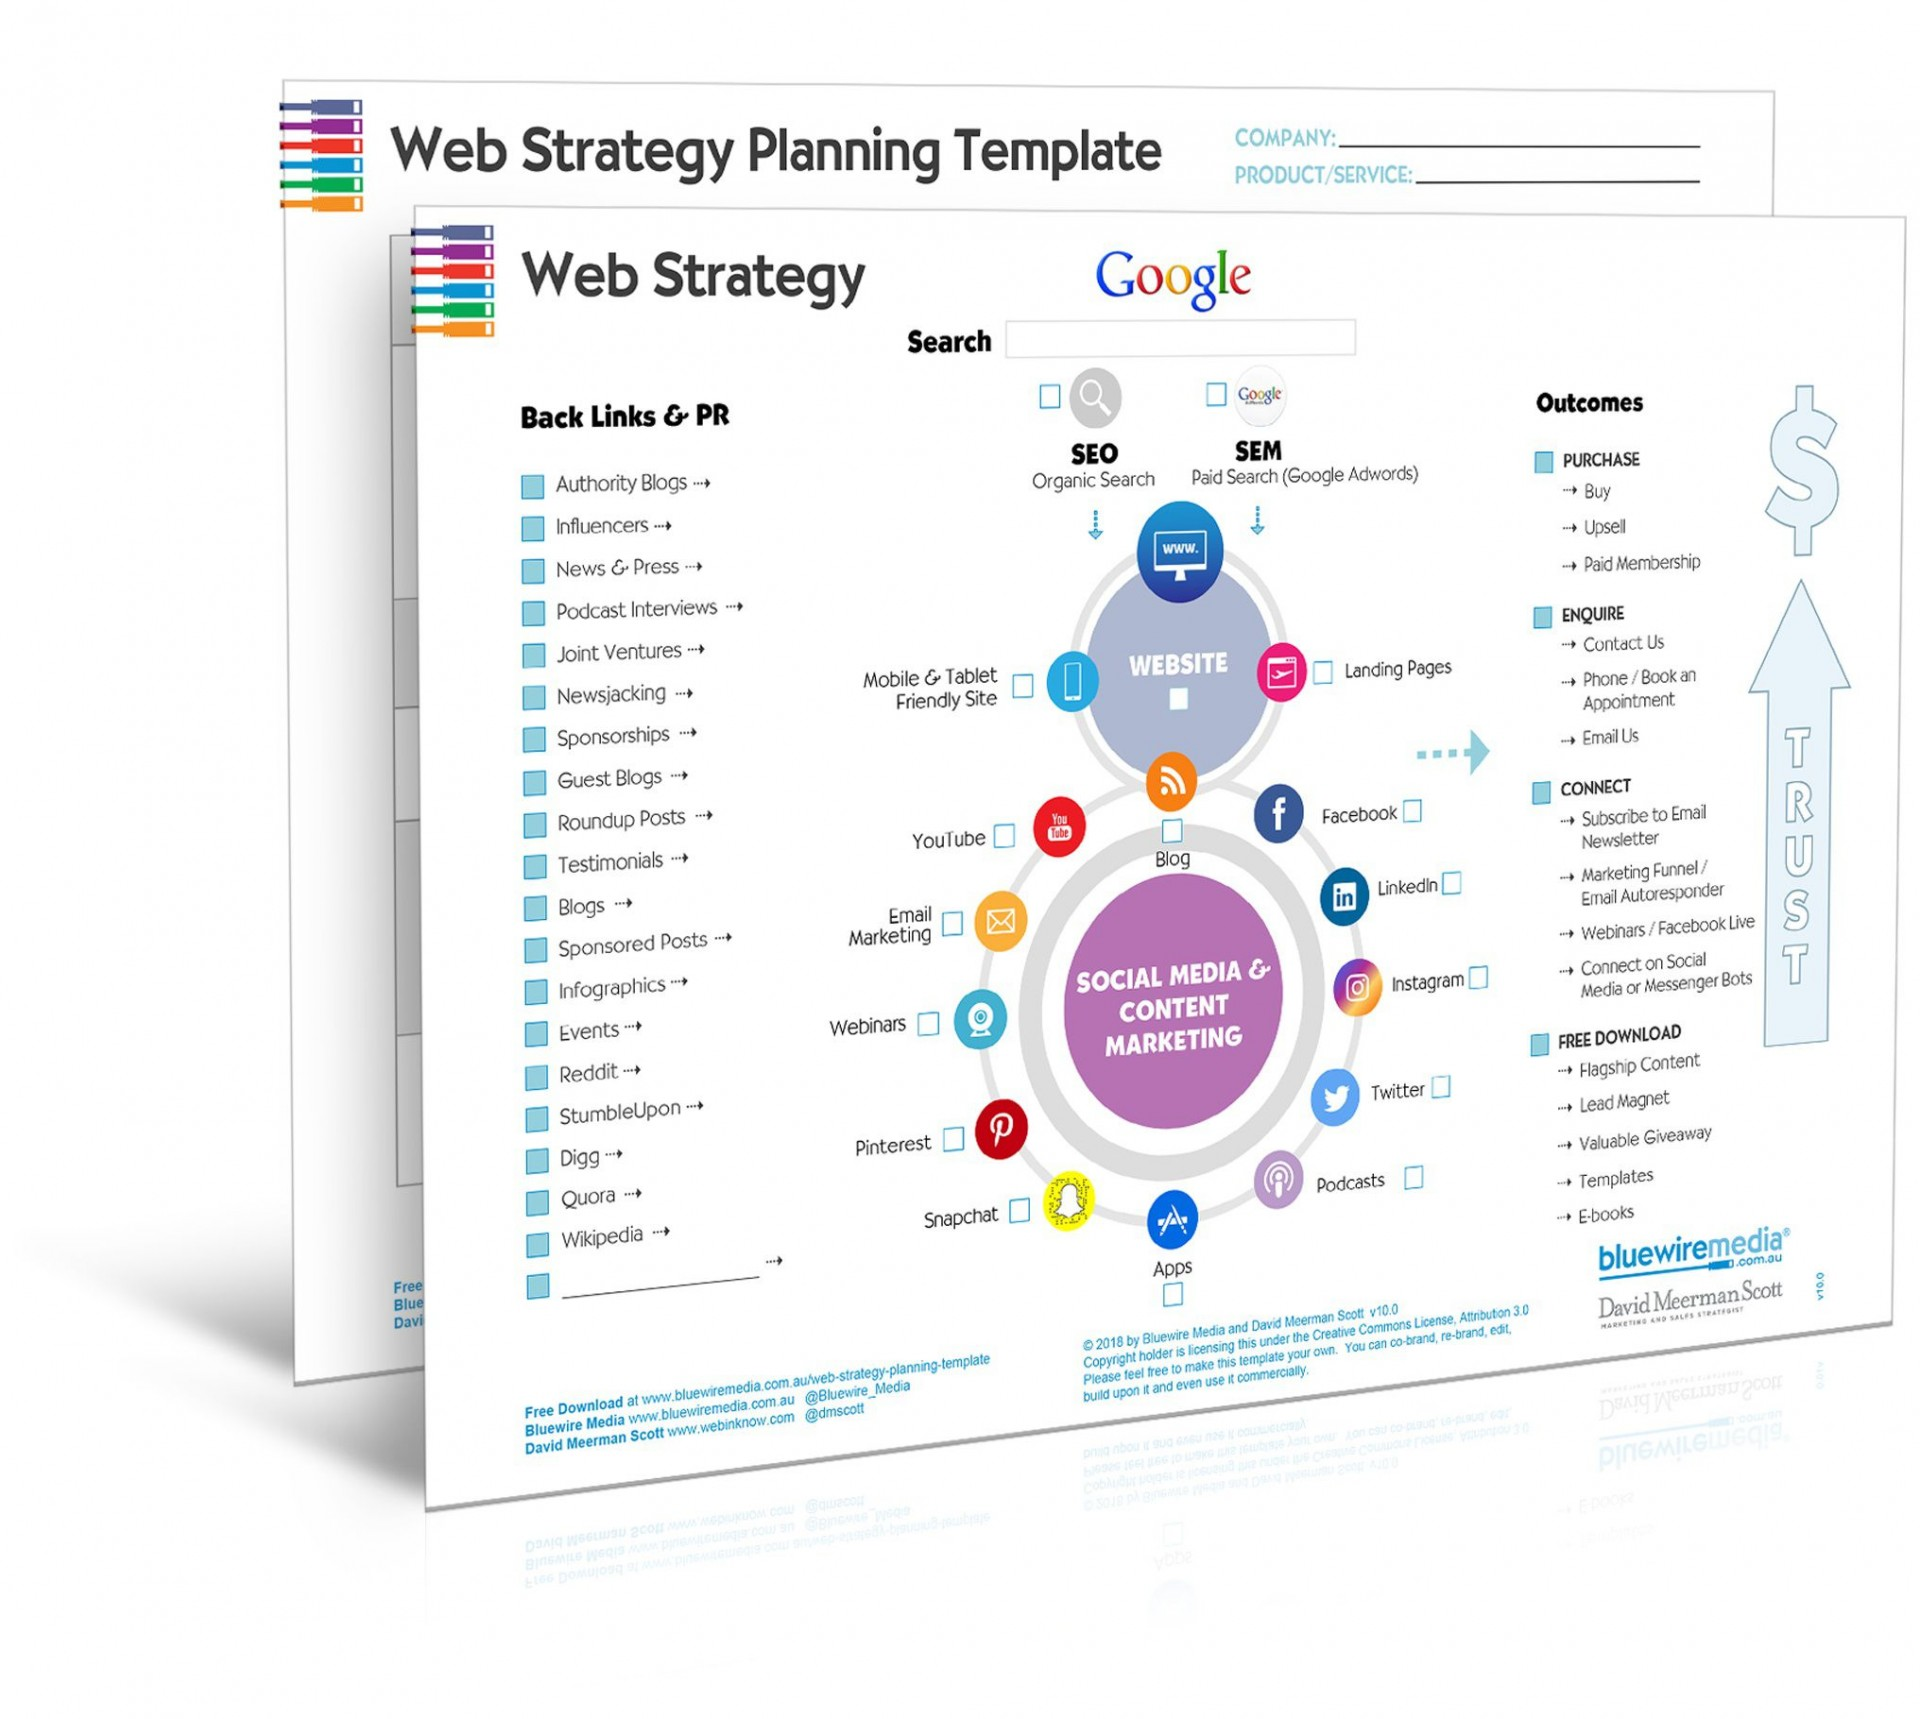 009 Exceptional Digital Marketing Strategy Template Picture  2019 Pdf Doc Planning1920